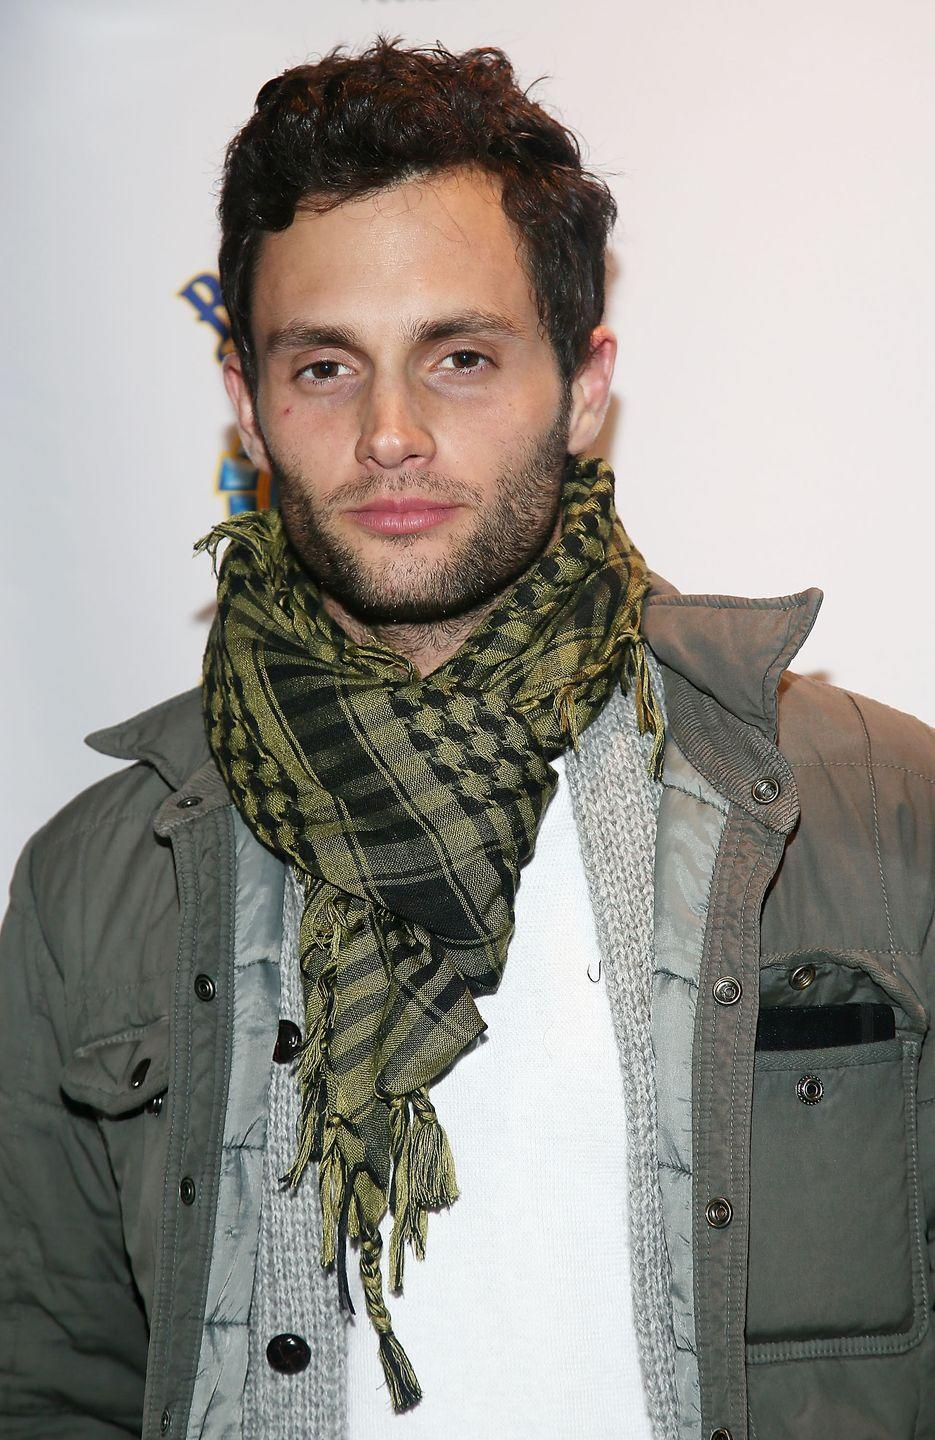 "<p>Though Badgley didn't directly state he hated his character on <em>Gossip Girl,</em> he did reference the show and its flaws on multiple occasions. He <a href=""https://twitter.com/PennBadgley/status/558480546121392128"" rel=""nofollow noopener"" target=""_blank"" data-ylk=""slk:tweeted"" class=""link rapid-noclick-resp"">tweeted</a> in 2015, ""Lol shit we are *reclining* on New York City. I'm posted up like its a futon. Talk about an image of white privilege."" He also told <a href=""https://www.salon.com/2013/04/30/a_gossip_girl_star_becomes_jeff_buckley_i_was_not_his_most_rabid_fan/"" rel=""nofollow noopener"" target=""_blank"" data-ylk=""slk:Salon"" class=""link rapid-noclick-resp"">Salon</a> back in 2013, ""To be proud of something is a really nice feeling...and it's a new feeling. It's something that I wanna keep going with."" (<em>Gossip Girl</em> aired from 2007–2012.) </p>"